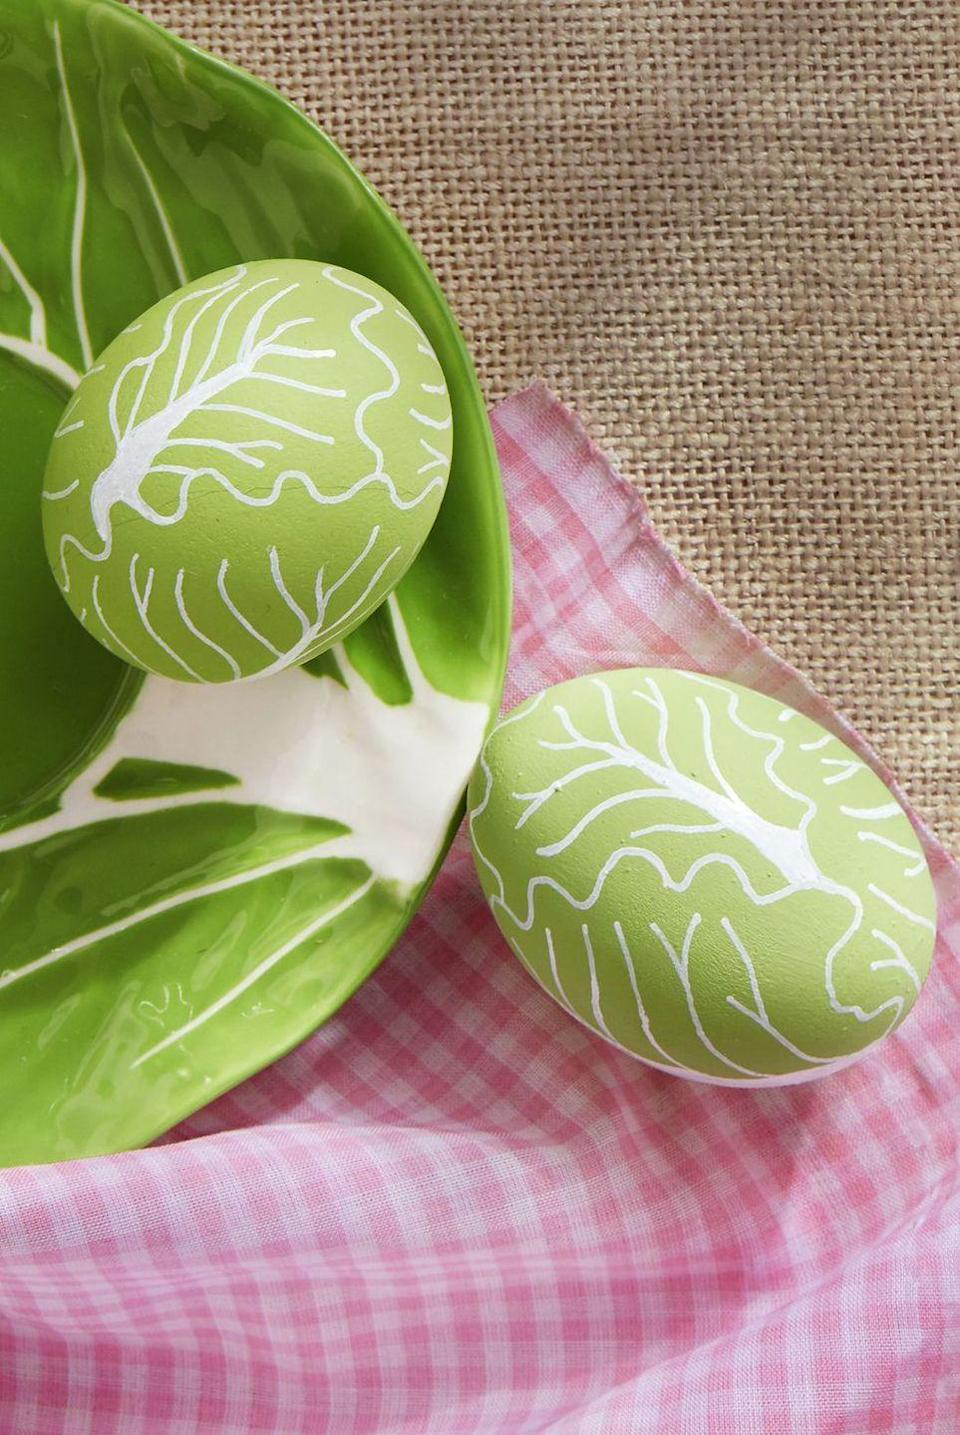 "<p>Paint the entire egg with green acrylic paint. Once dry, apply ""veins"" using a thin-tipped <a href=""https://www.amazon.com/Sharpie-Poster-Paint-Markers-White-35583/dp/B00MKULHJQ?tag=syn-yahoo-20&ascsubtag=%5Bartid%7C10050.g.1282%5Bsrc%7Cyahoo-us"" rel=""nofollow noopener"" target=""_blank"" data-ylk=""slk:white paint pen"" class=""link rapid-noclick-resp"">white paint pen</a>.</p><p><a class=""link rapid-noclick-resp"" href=""https://www.amazon.com/DecoArt-DADCP75-Patio-Paint-Acrylic/dp/B0051OUJFQ/?tag=syn-yahoo-20&ascsubtag=%5Bartid%7C10050.g.1282%5Bsrc%7Cyahoo-us"" rel=""nofollow noopener"" target=""_blank"" data-ylk=""slk:SHOP GREEN PAINT"">SHOP GREEN PAINT</a></p>"